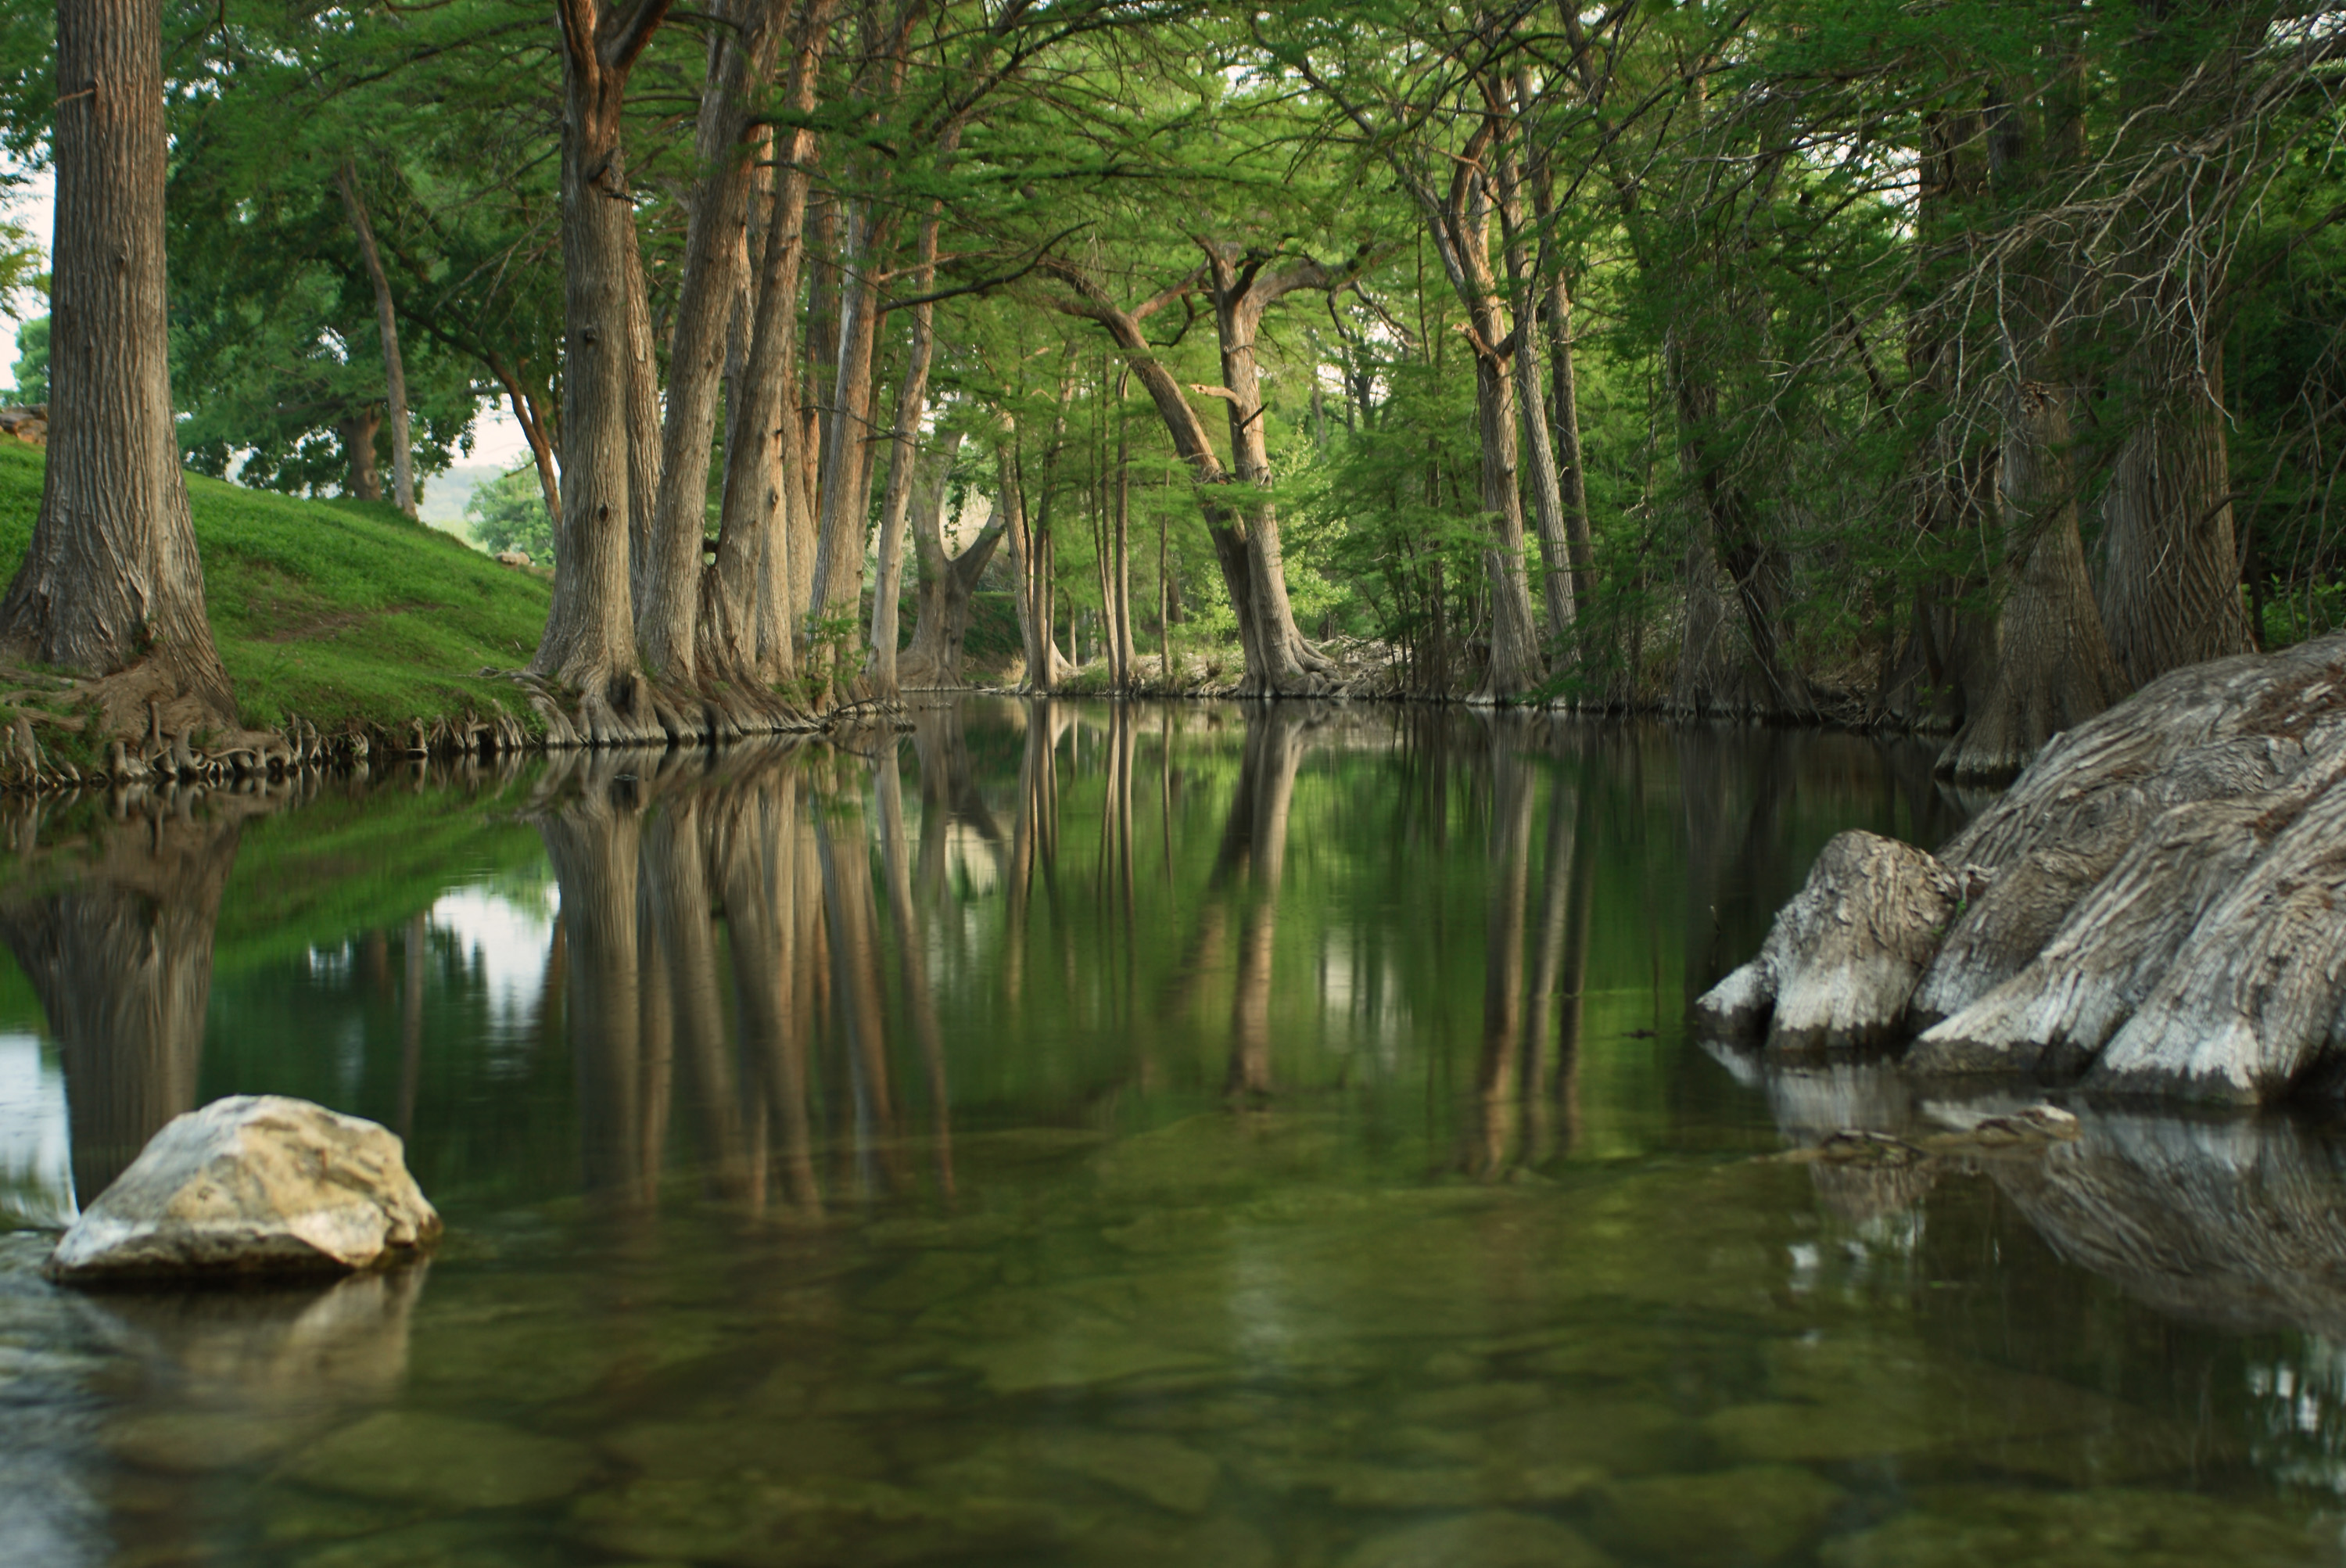 Texas Water Symposium planned for February 23 in San Marcos: Watershed Protection Plans: Creating and Maintaining Healthy Waterways at a Community Scale